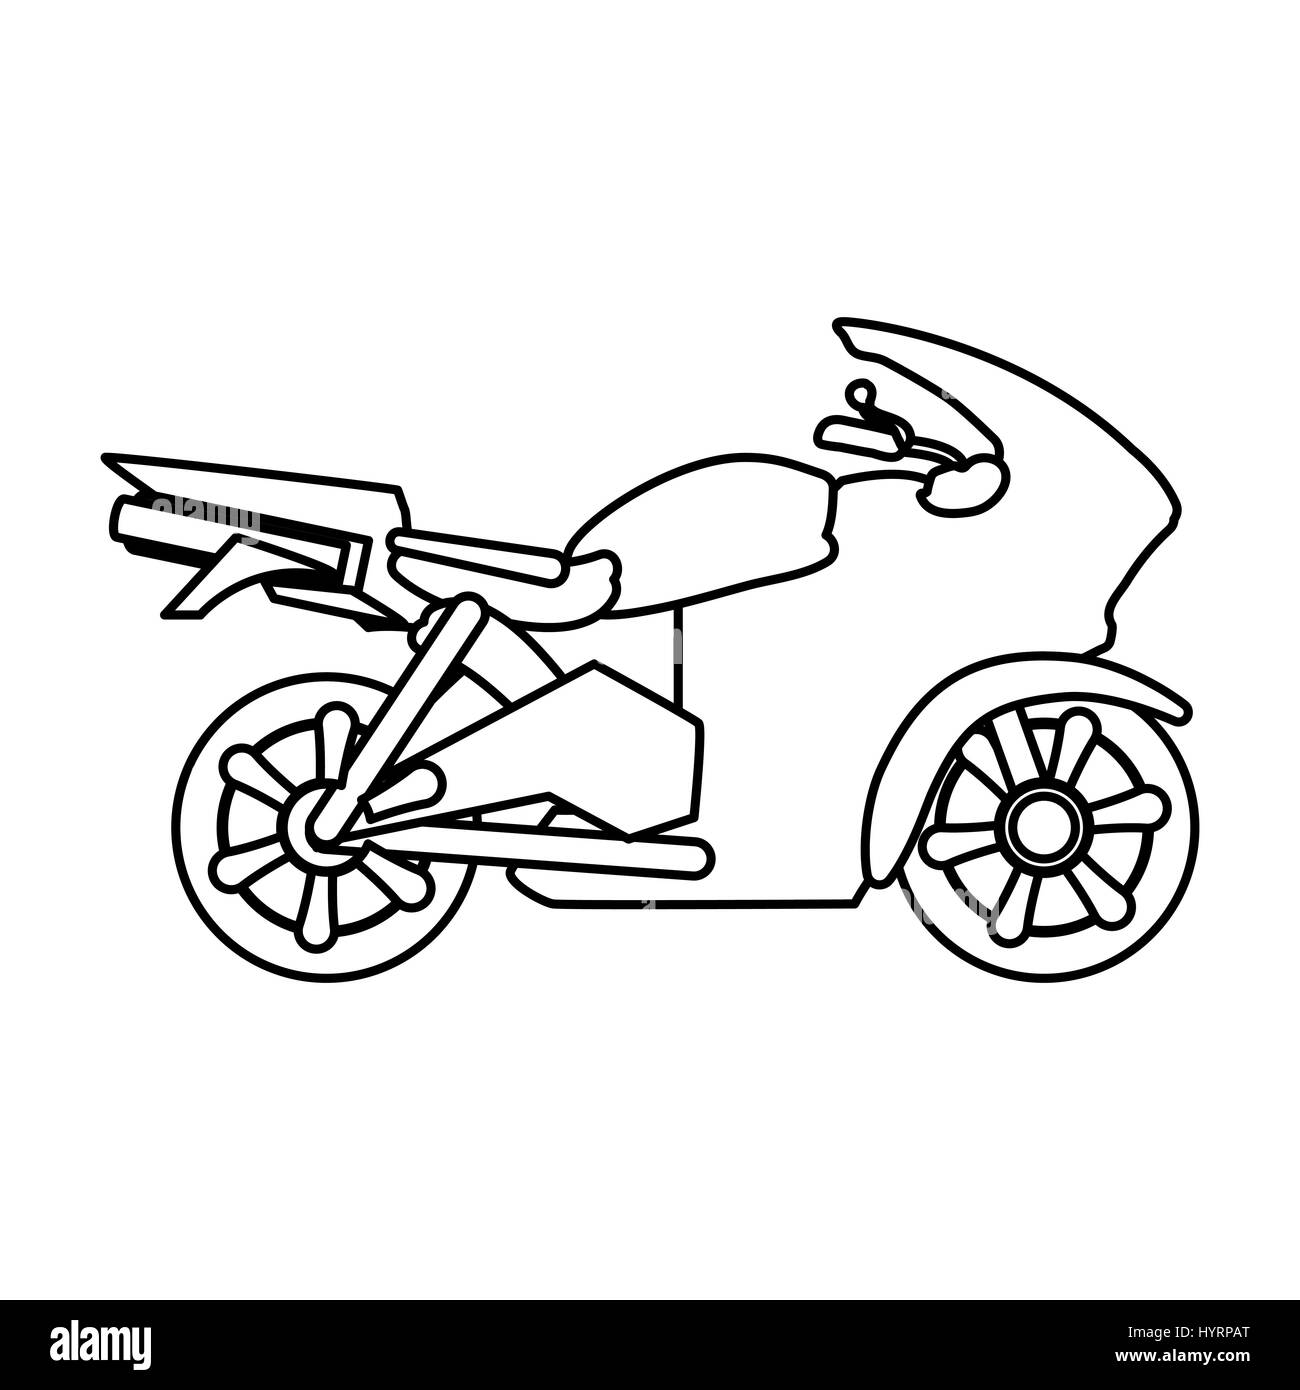 Racing Motorcycle Silhouette Icon Vector Illustration Graphic Design